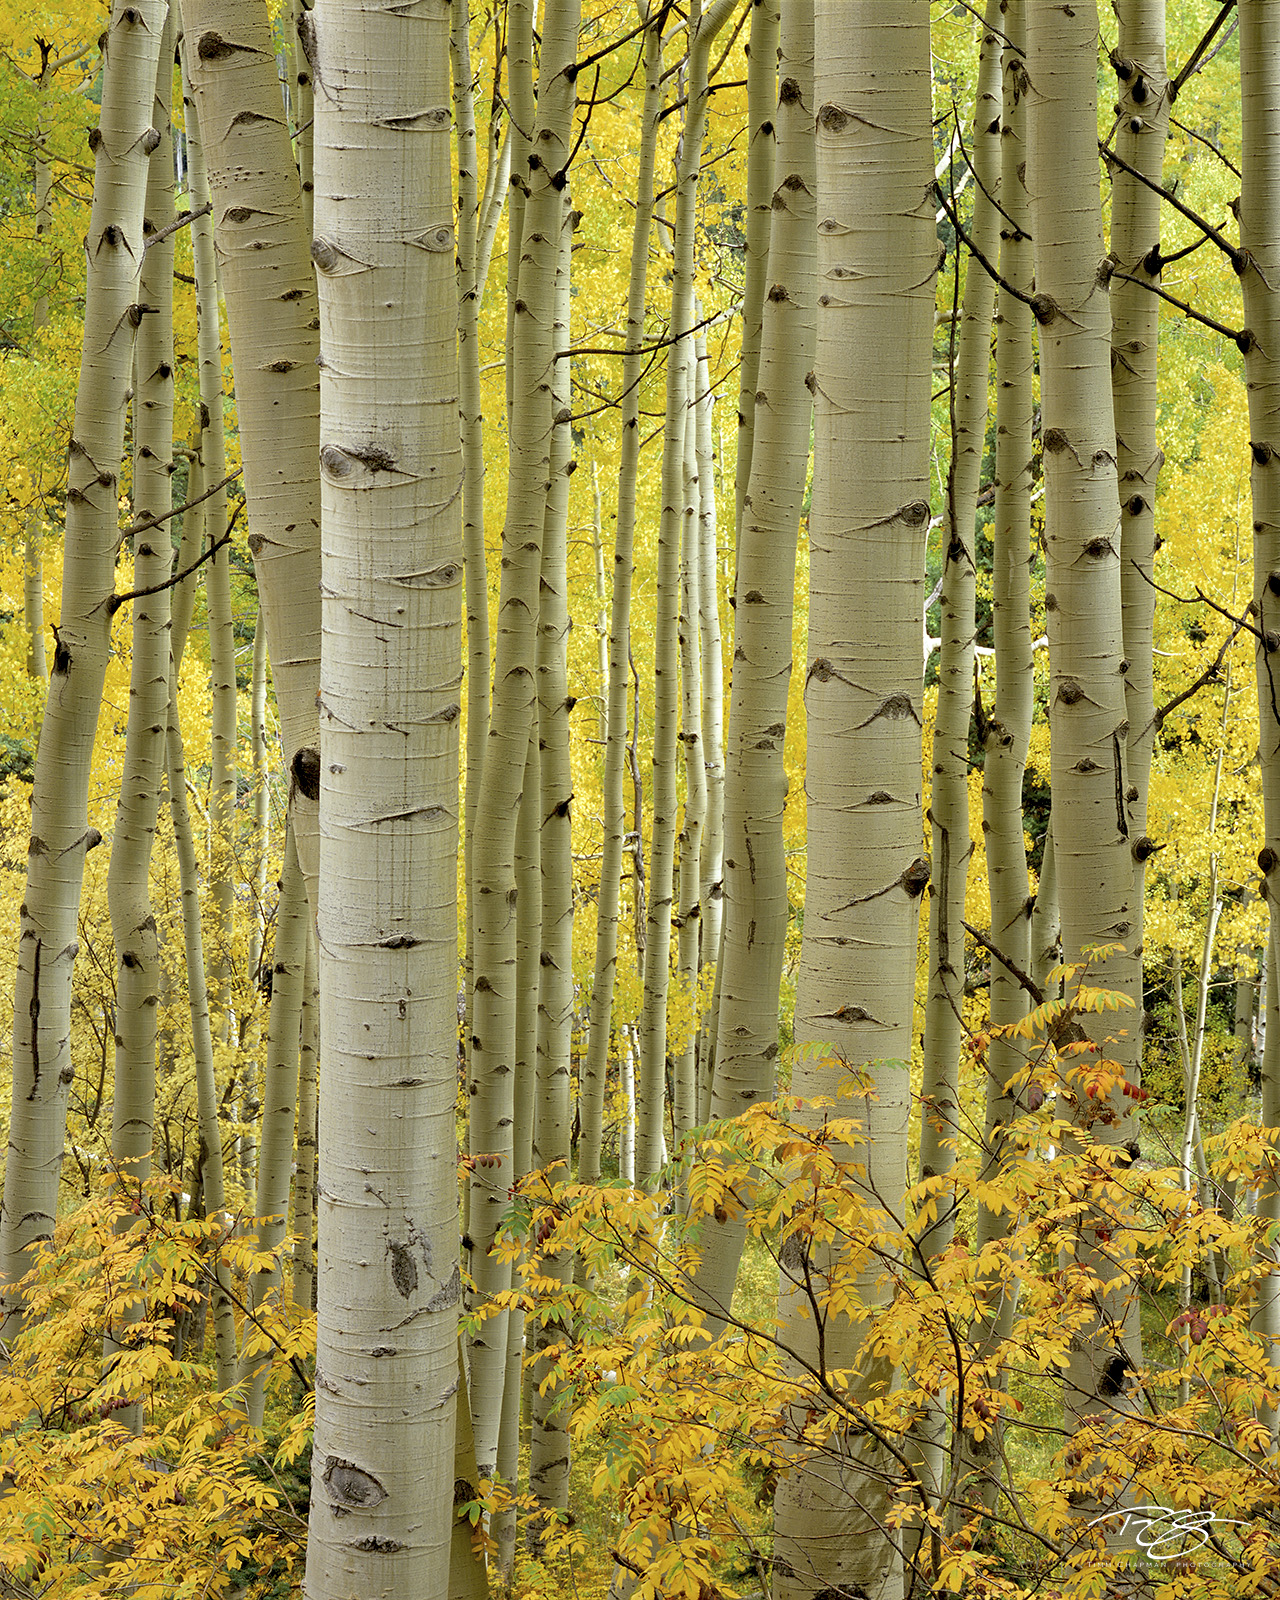 Colorado, aspen, autumn, fallen leaves, yellow leaves, golden canopy, autumn peak, leaves at their peak, sumac, photo